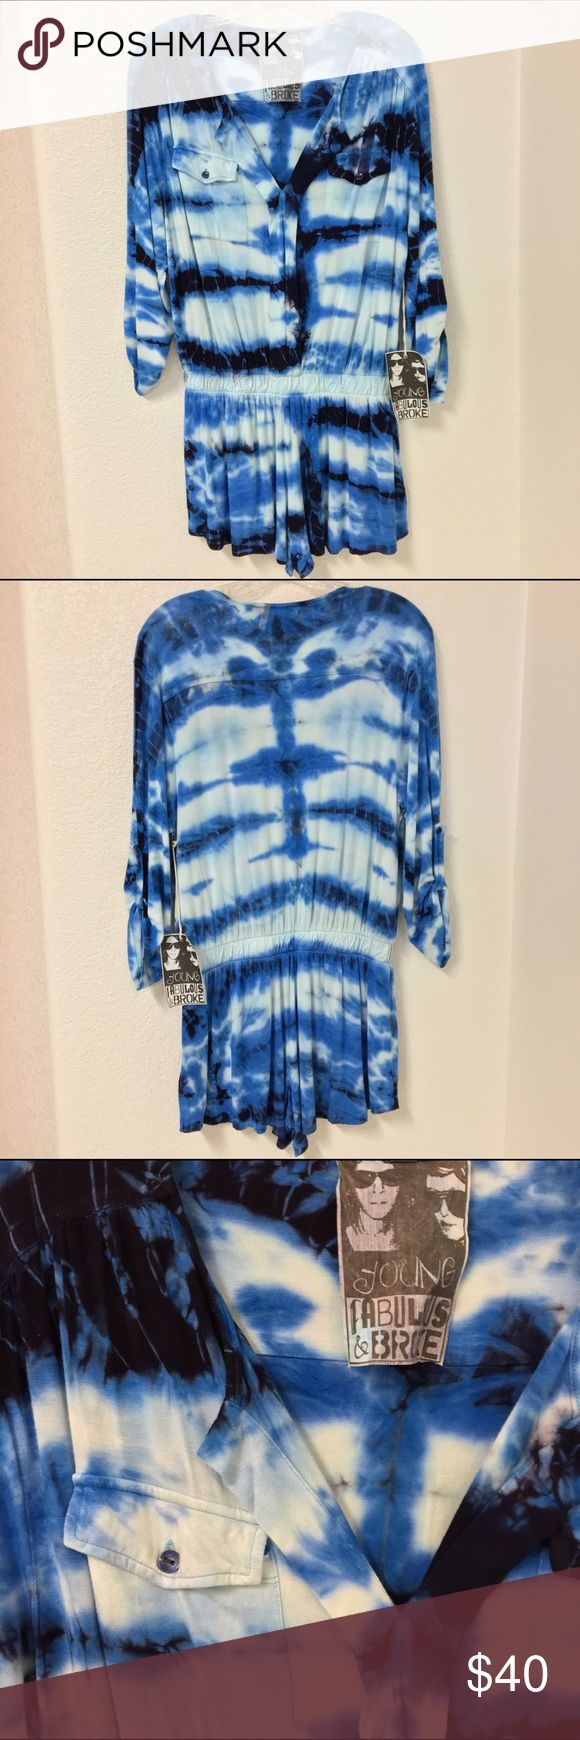 """Young Fabulous and Broke Tie-Dyed Beach Romper NWT, tie-dyed beach romper by Young Fabulous and Broke. Size small, overall length is 33"""", shorts length (measured from elastic band) is 10"""" long.  V-neckline, 2 front pockets, and roll tab sleeves. Material: 92% Modal 8% spandex. Young Fabulous & Broke Dresses"""